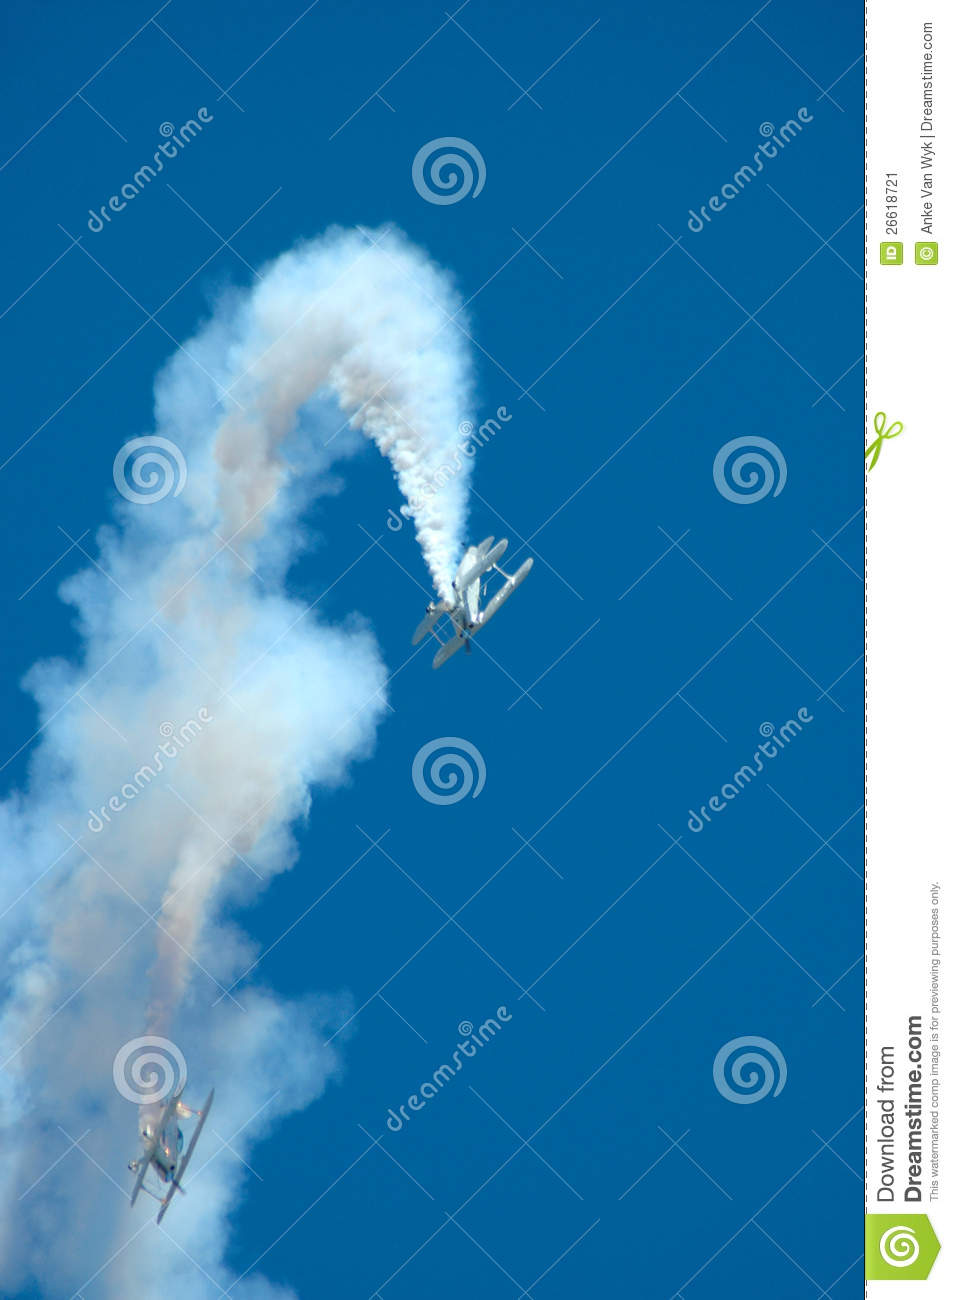 Airplanes In Trouble Stock Image - Image: 26618721  Airplanes In Tr...